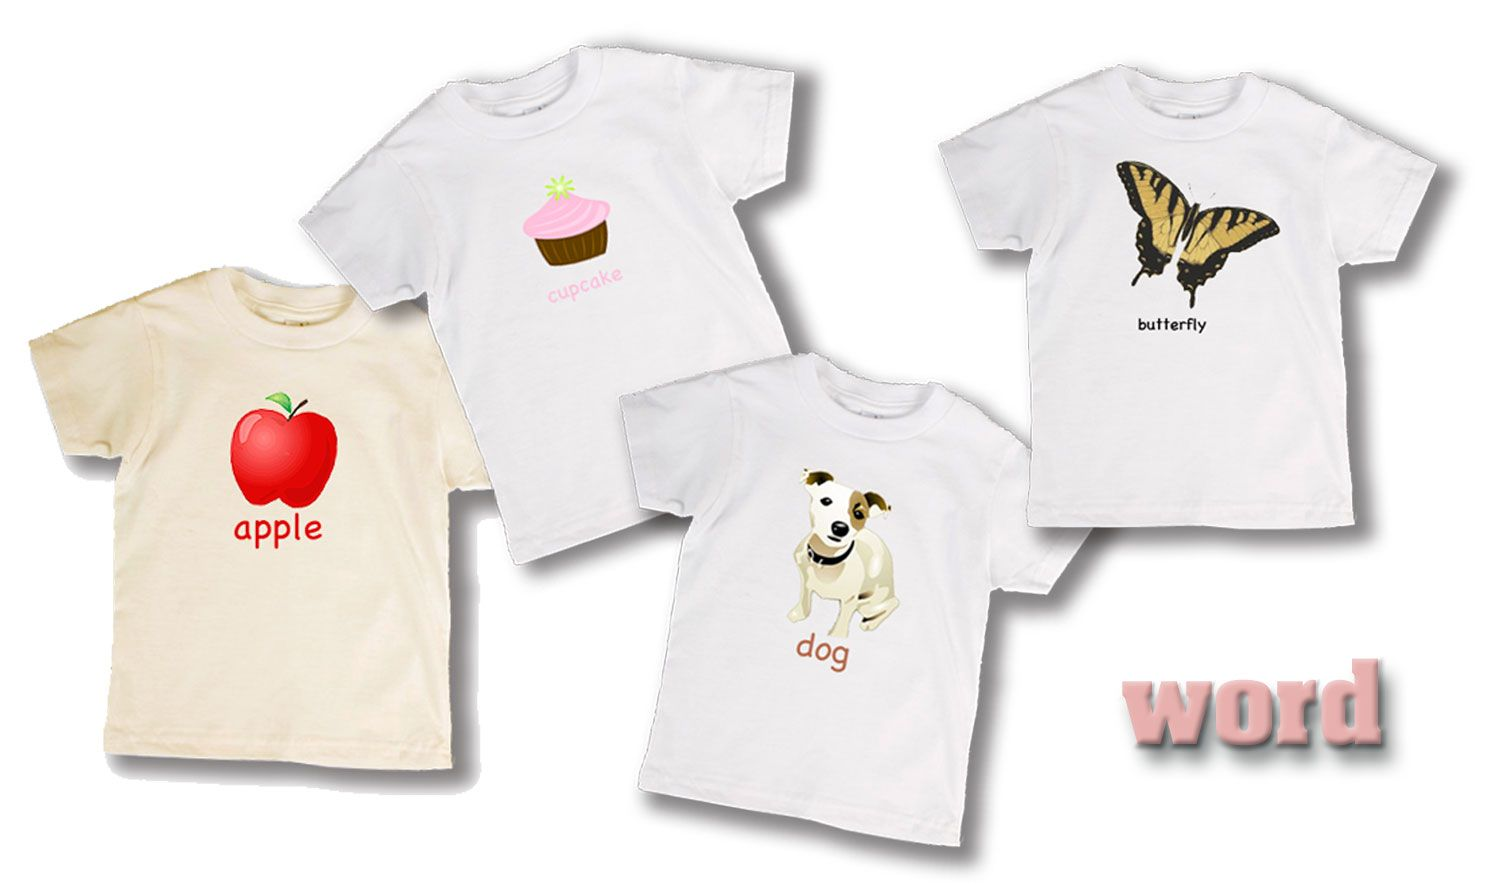 Nothing like a great cotton learning tee to learn the words. Apple anyone?